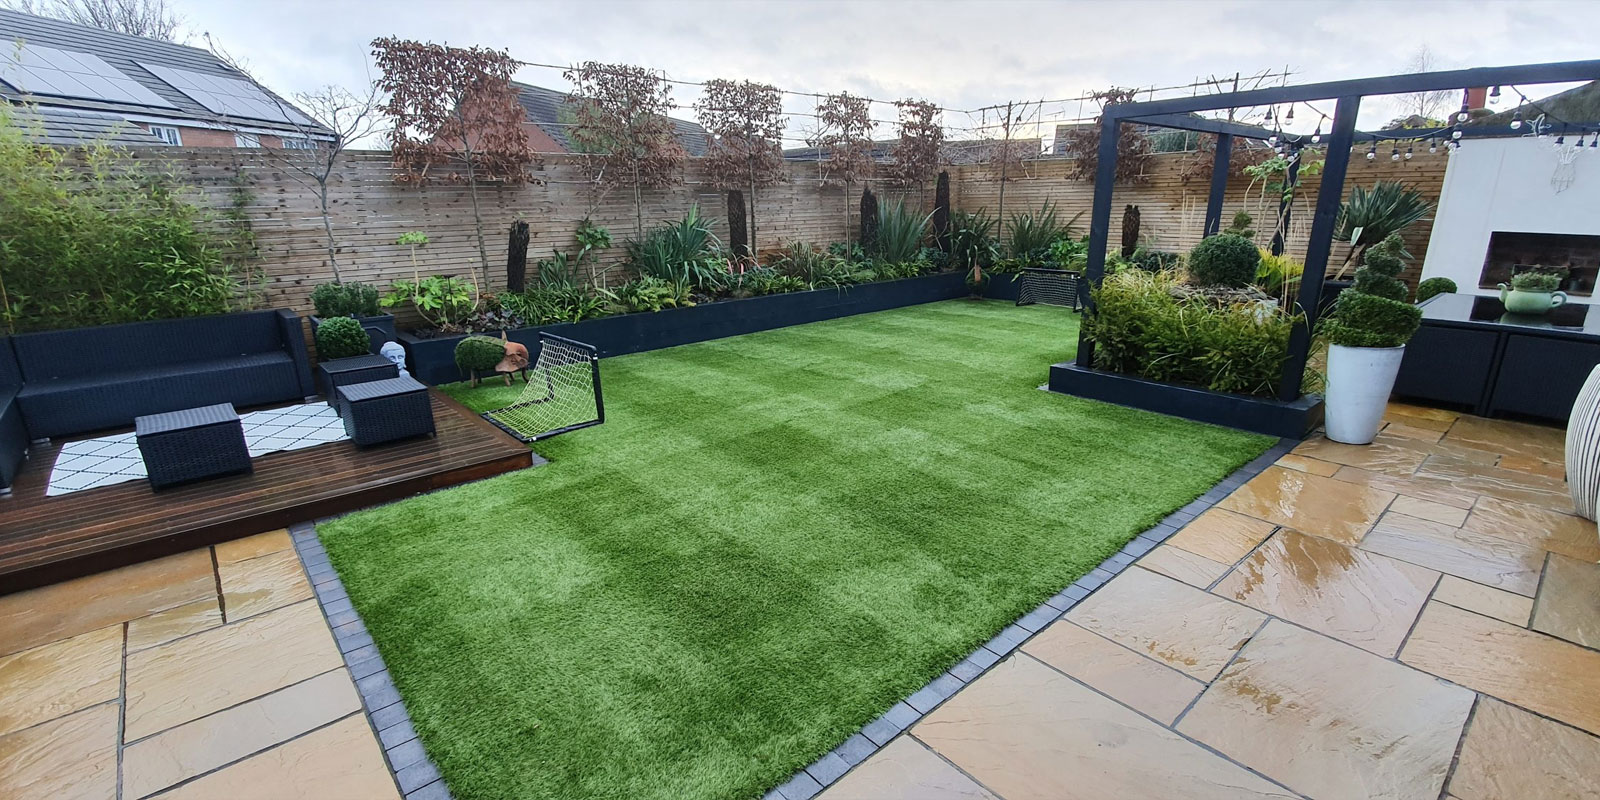 Quality Garden Landscaping Services in Leicester